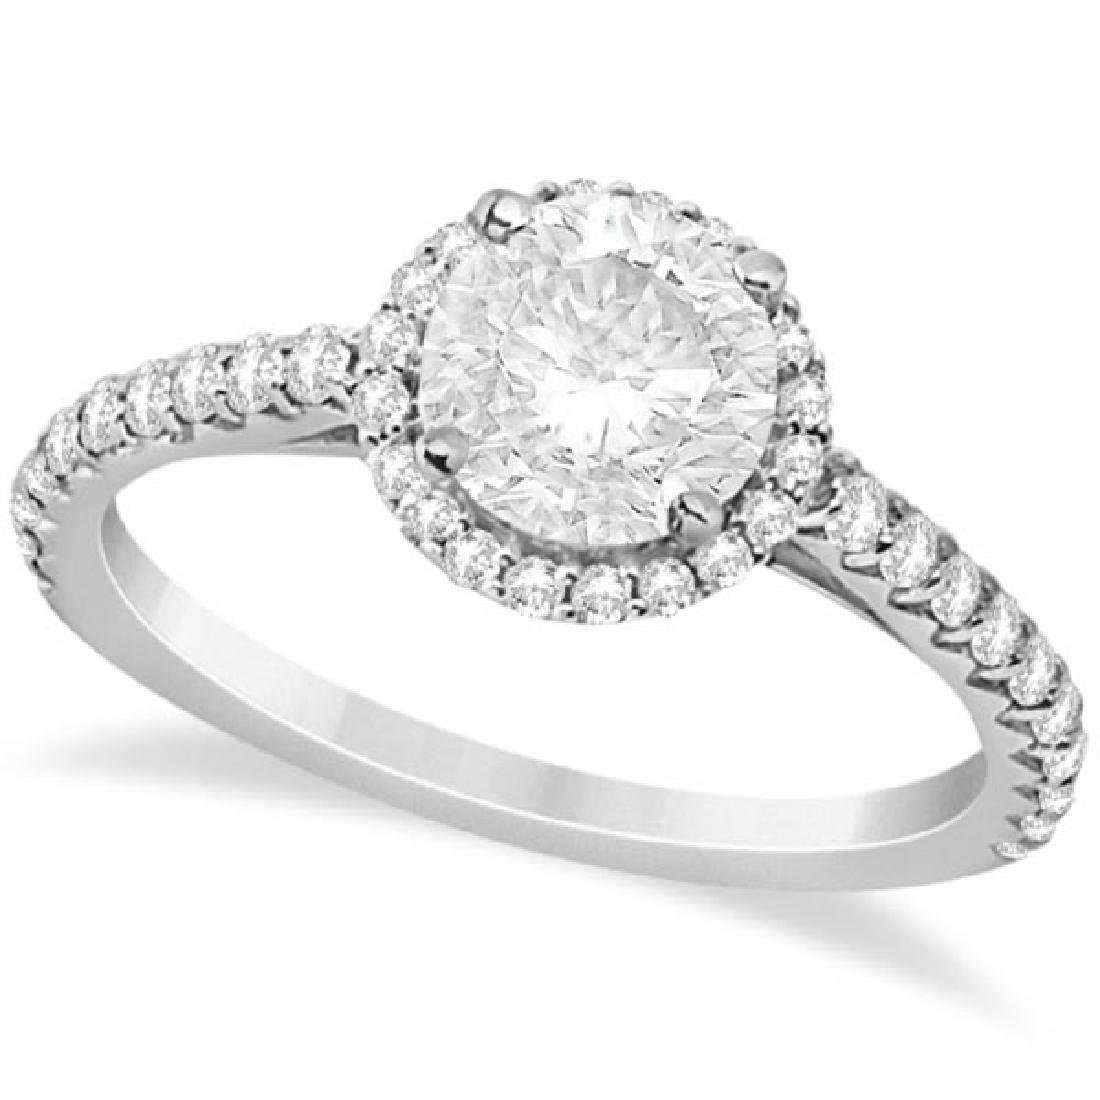 Halo Diamond Engagement Ring with Side Stone Accents 14